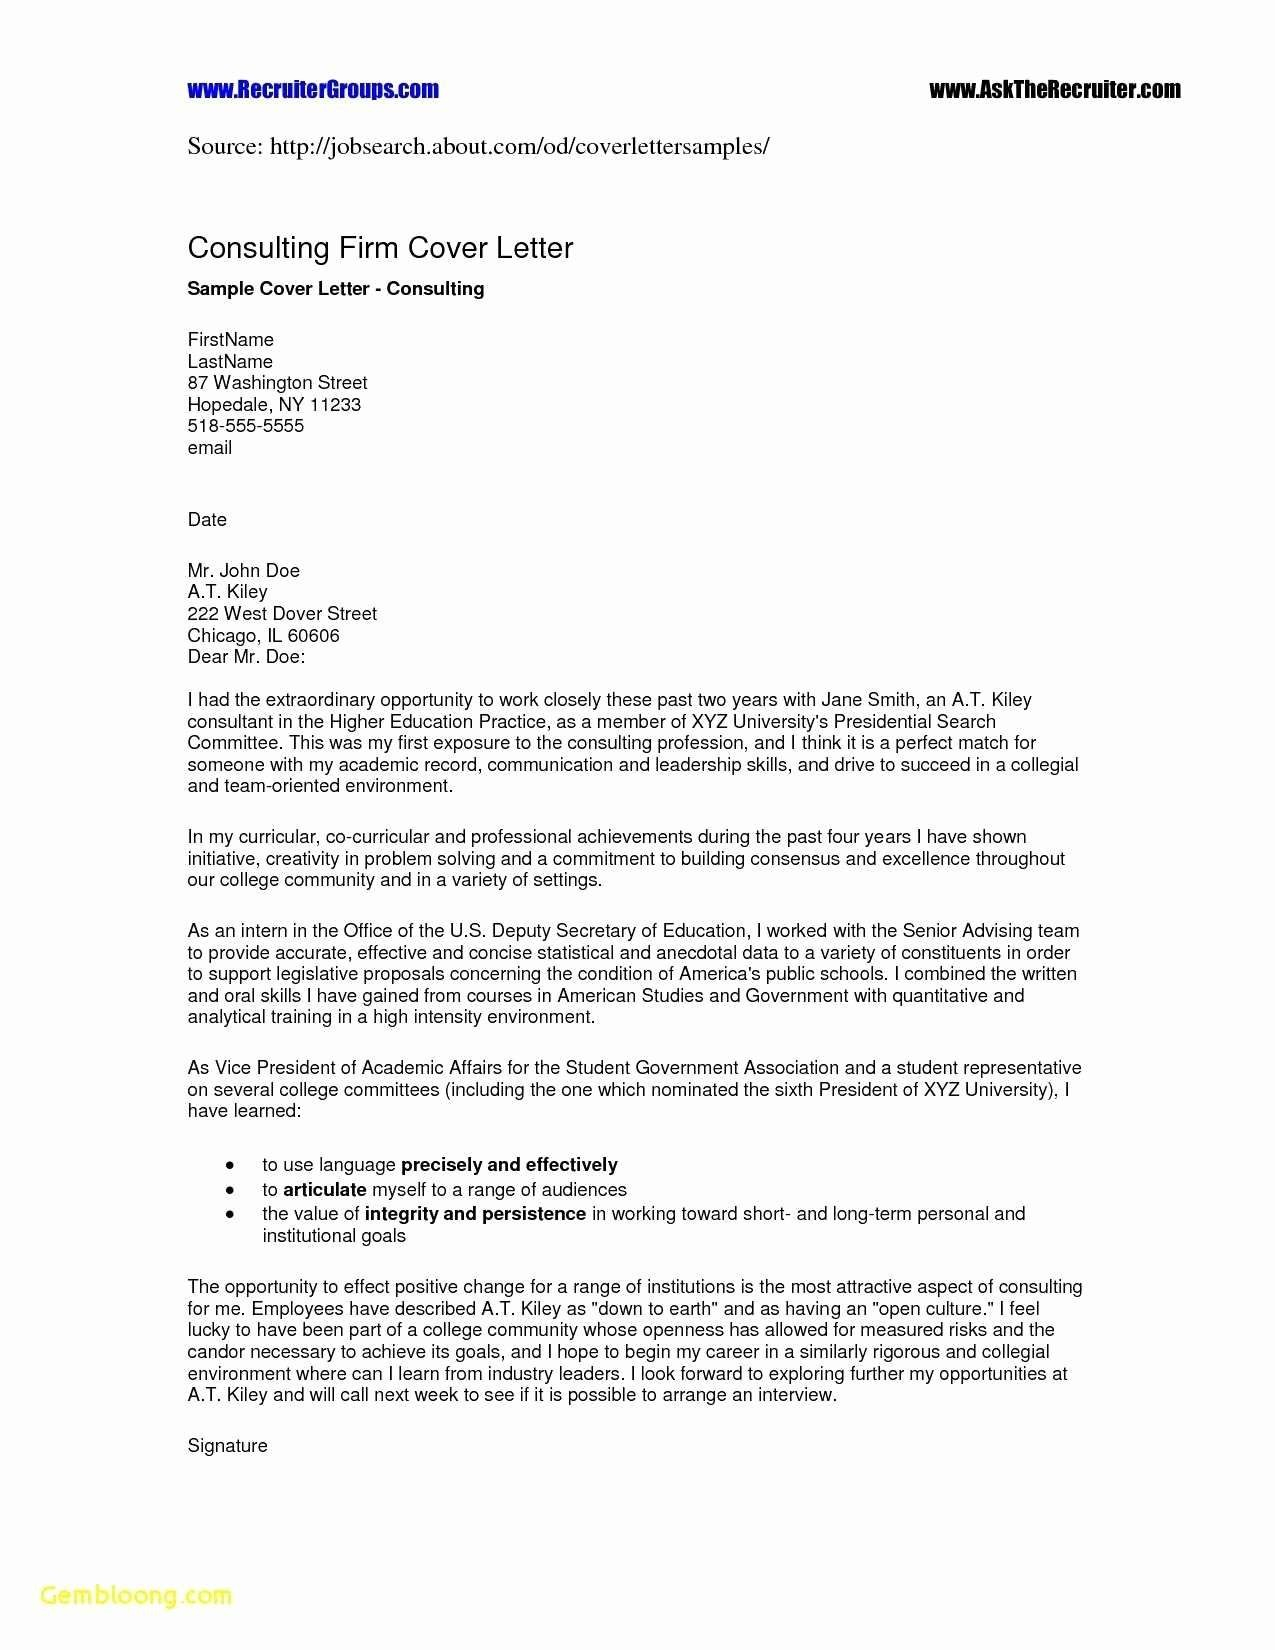 resume template for 16 year old example-Cover Letter Template 16 Year Old Best The 25 Elegant Resume For Mom Returning To Work Sample 6-n